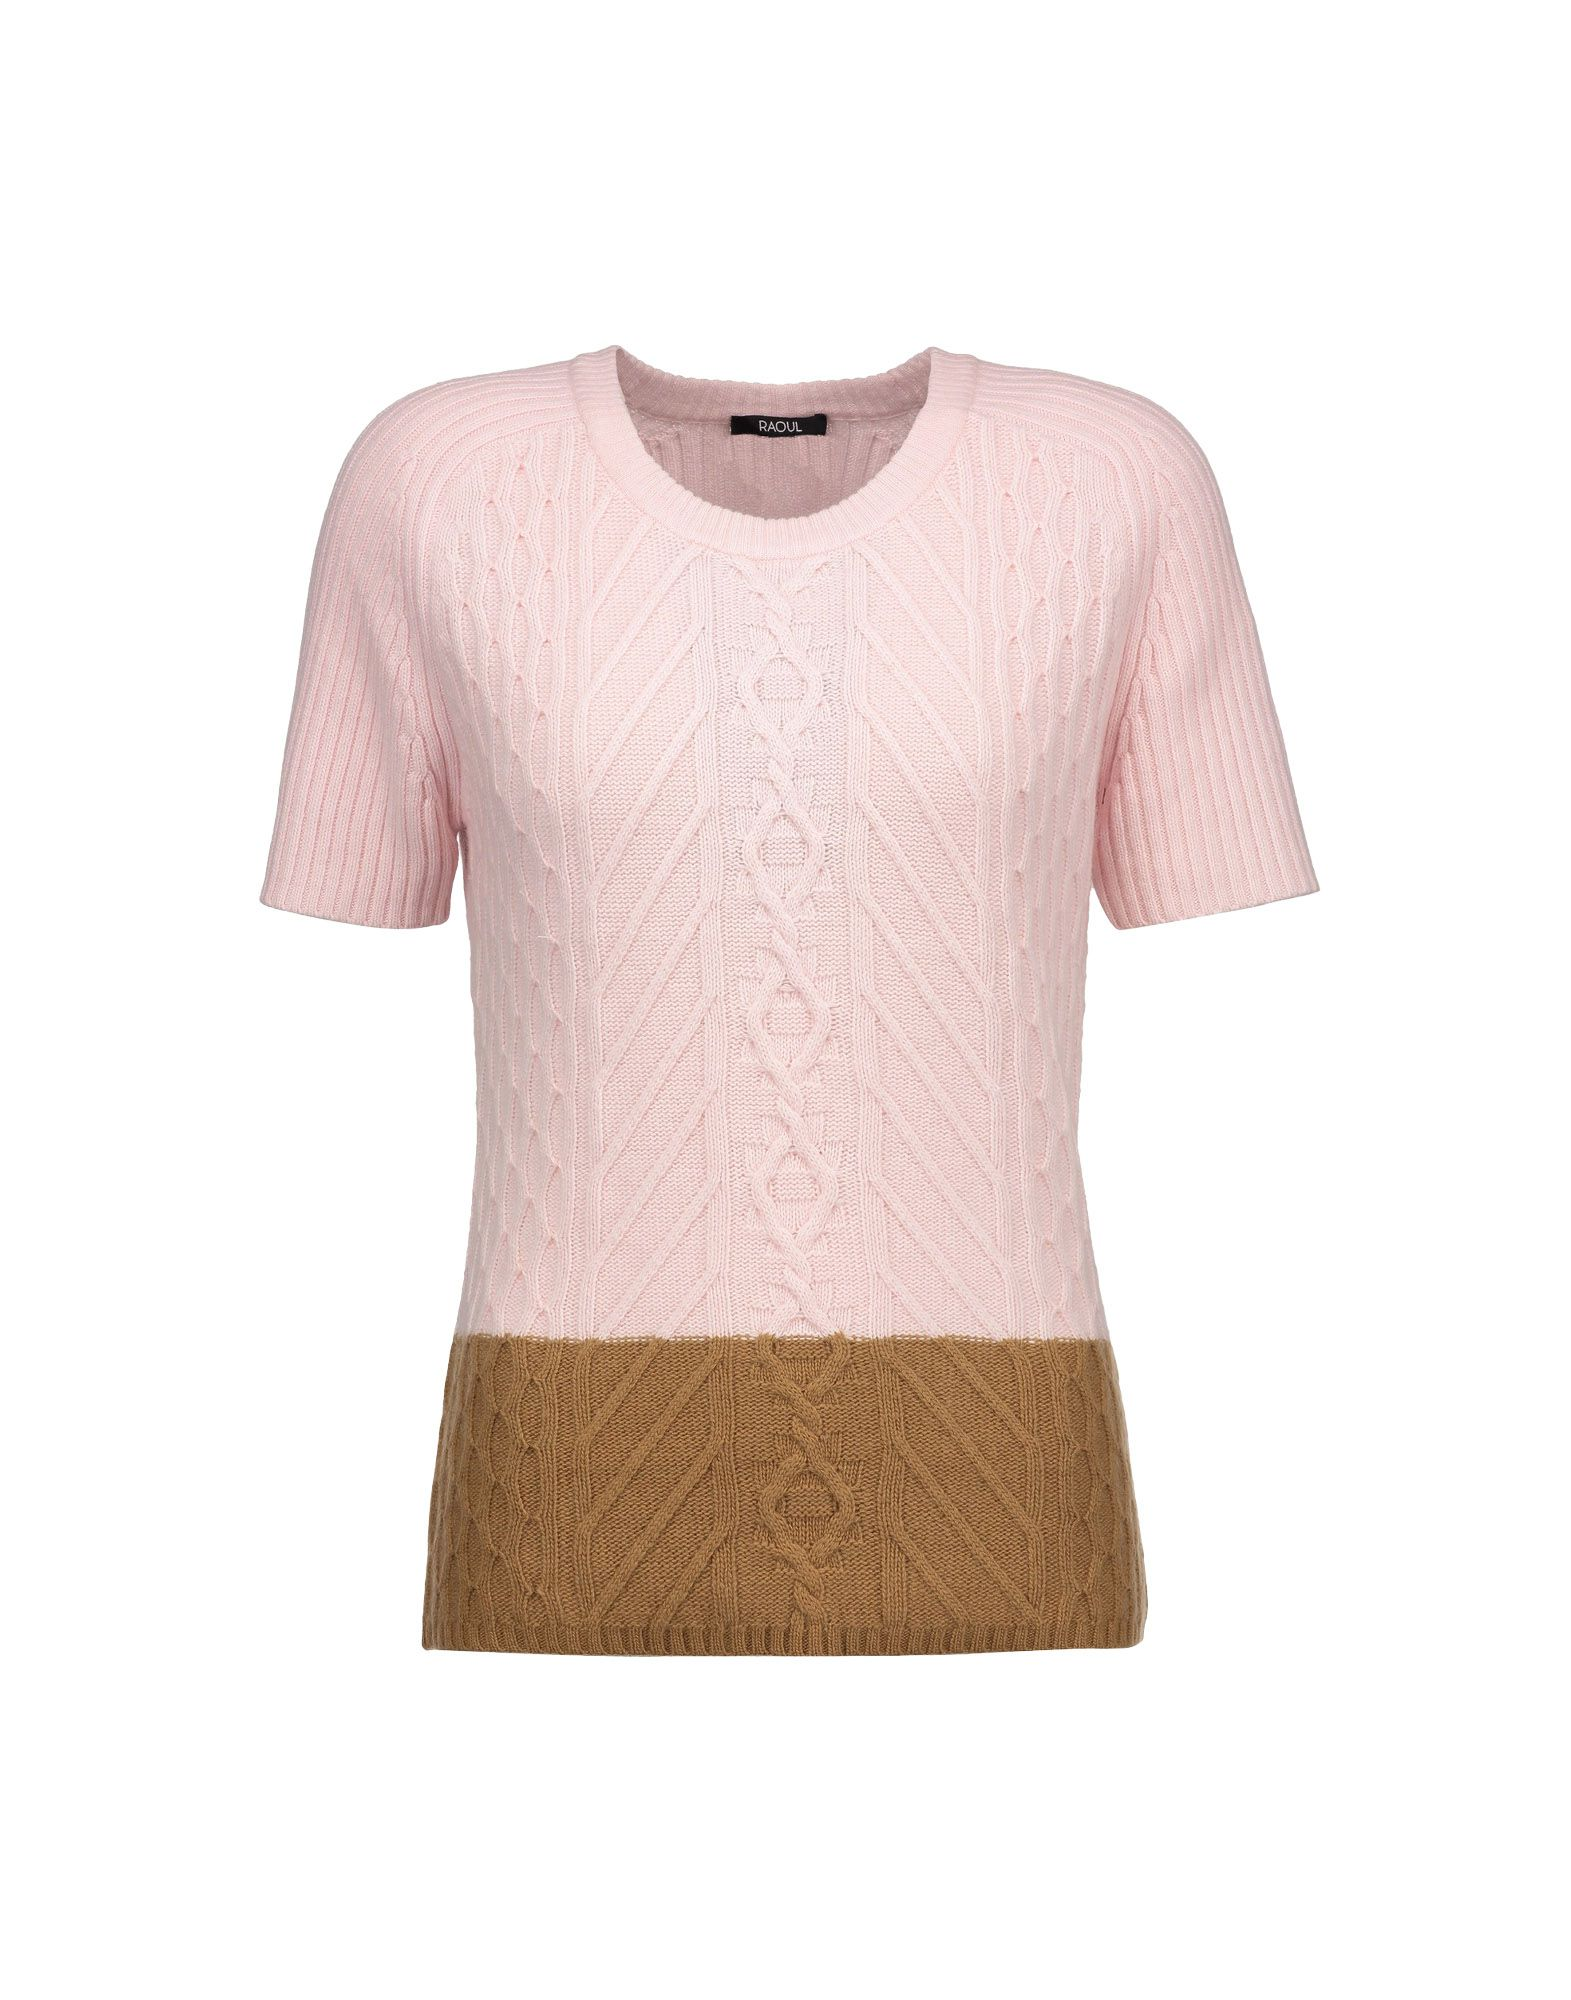 RAOUL Sweaters in Light Pink